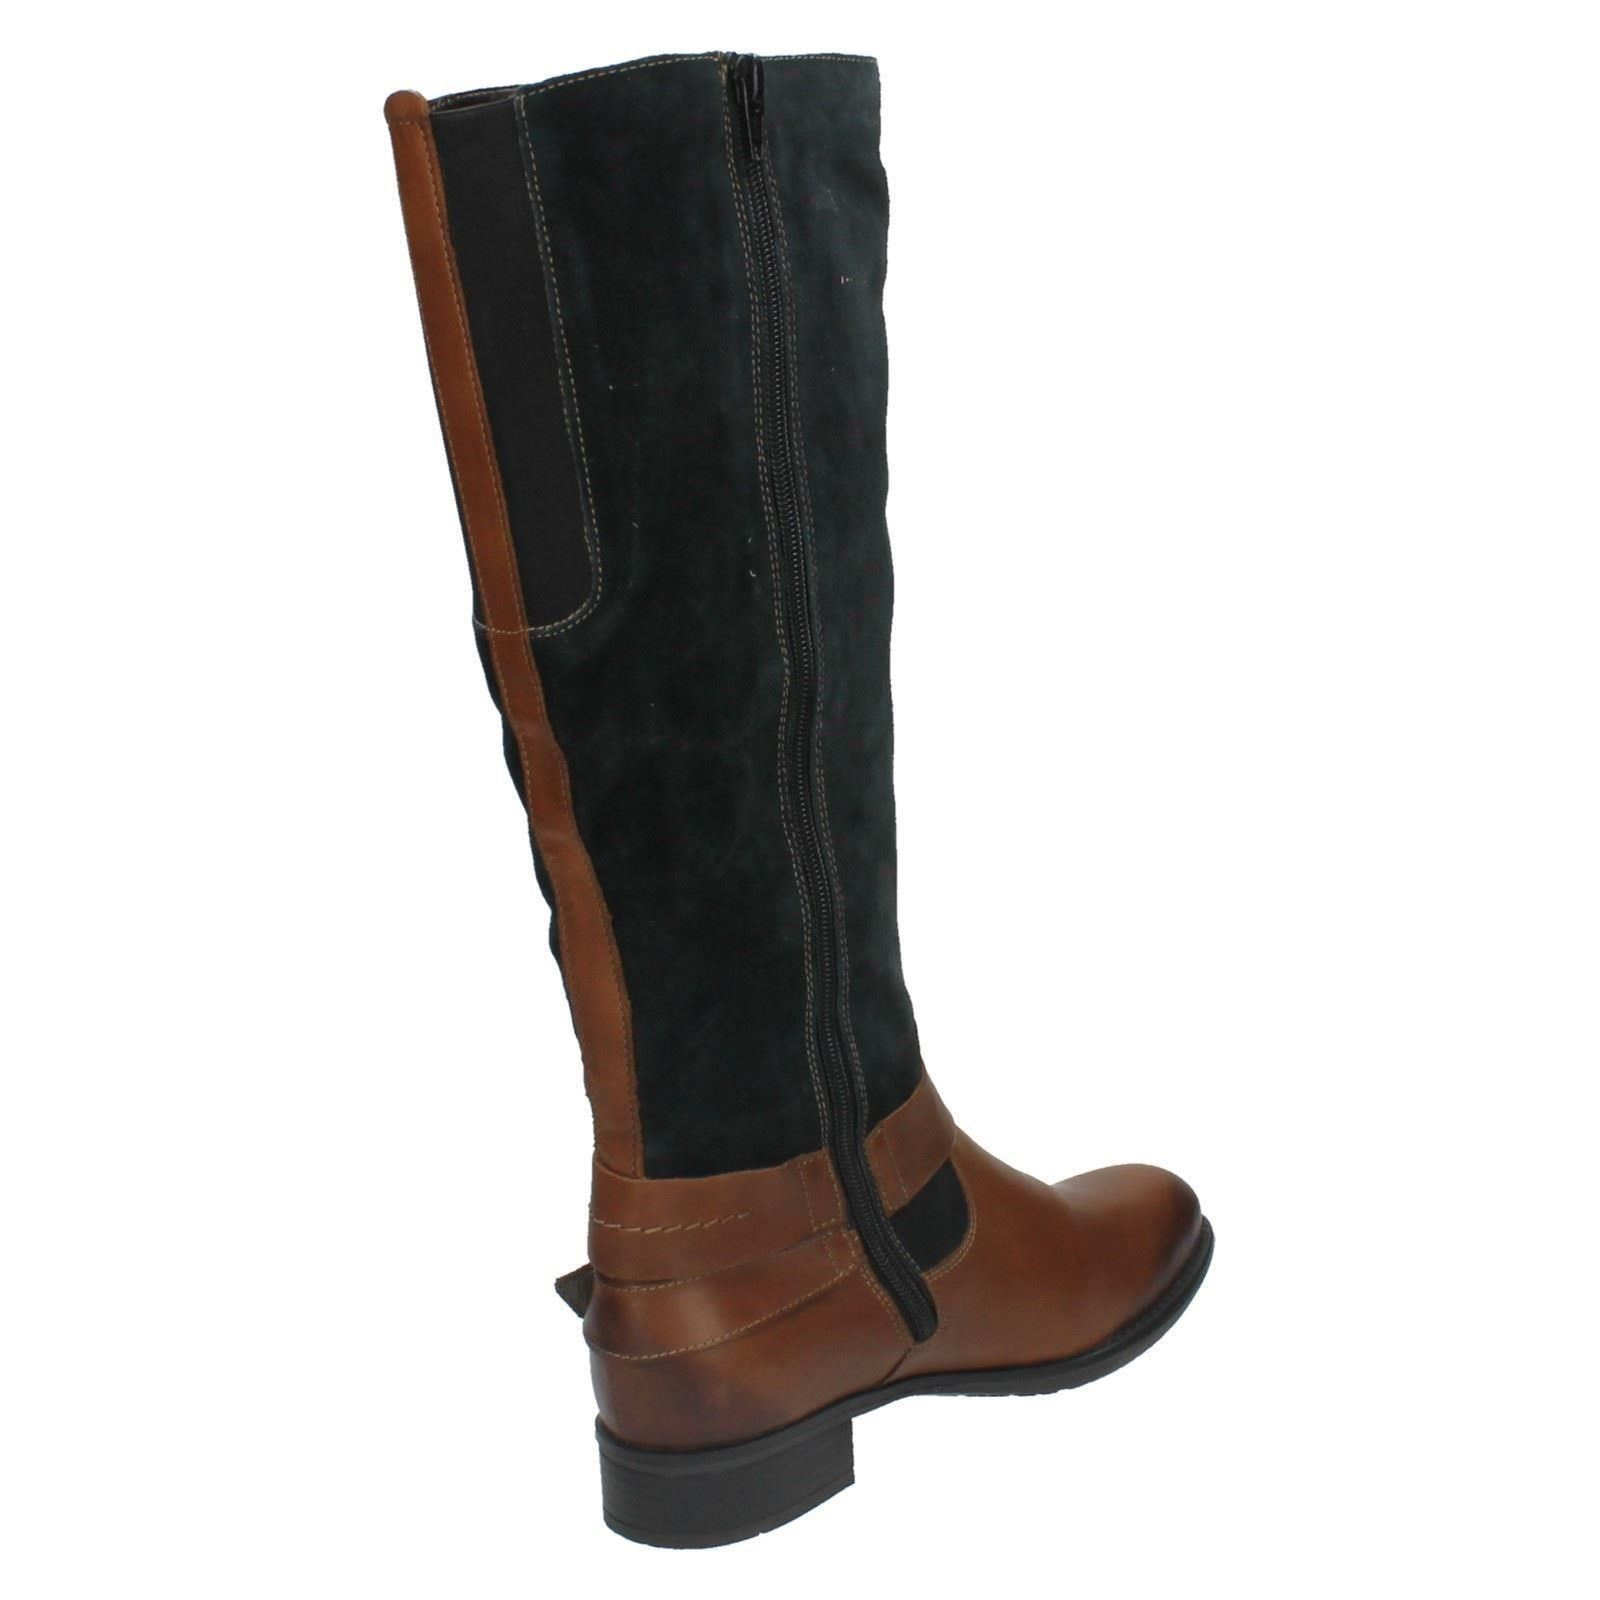 Ladies Remonte High Leg Leg Leg Boots 'R6471' e720f1